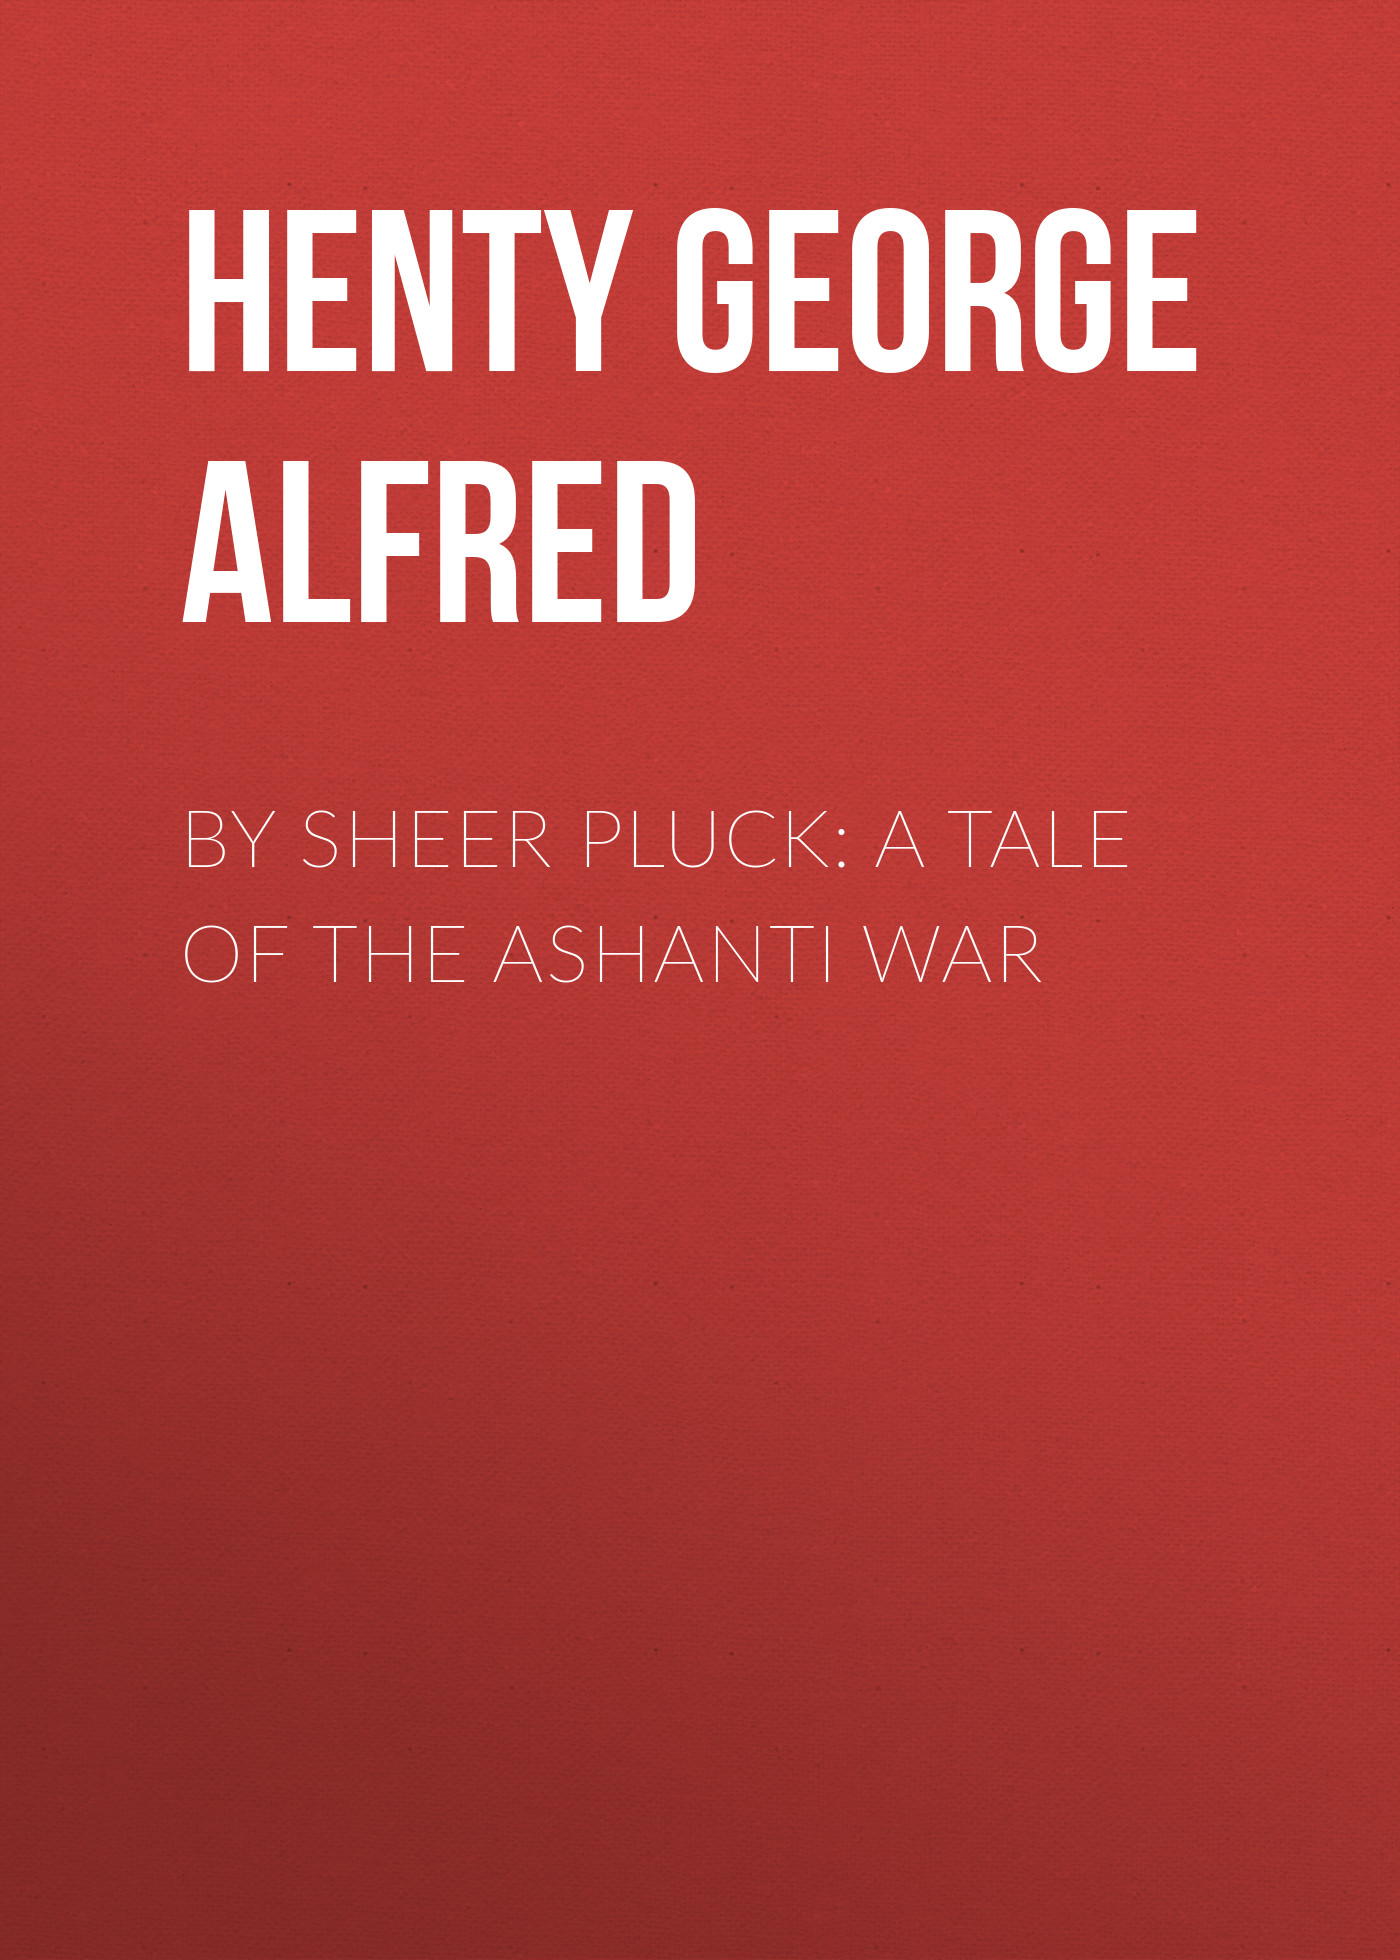 лучшая цена Henty George Alfred By Sheer Pluck: A Tale of the Ashanti War